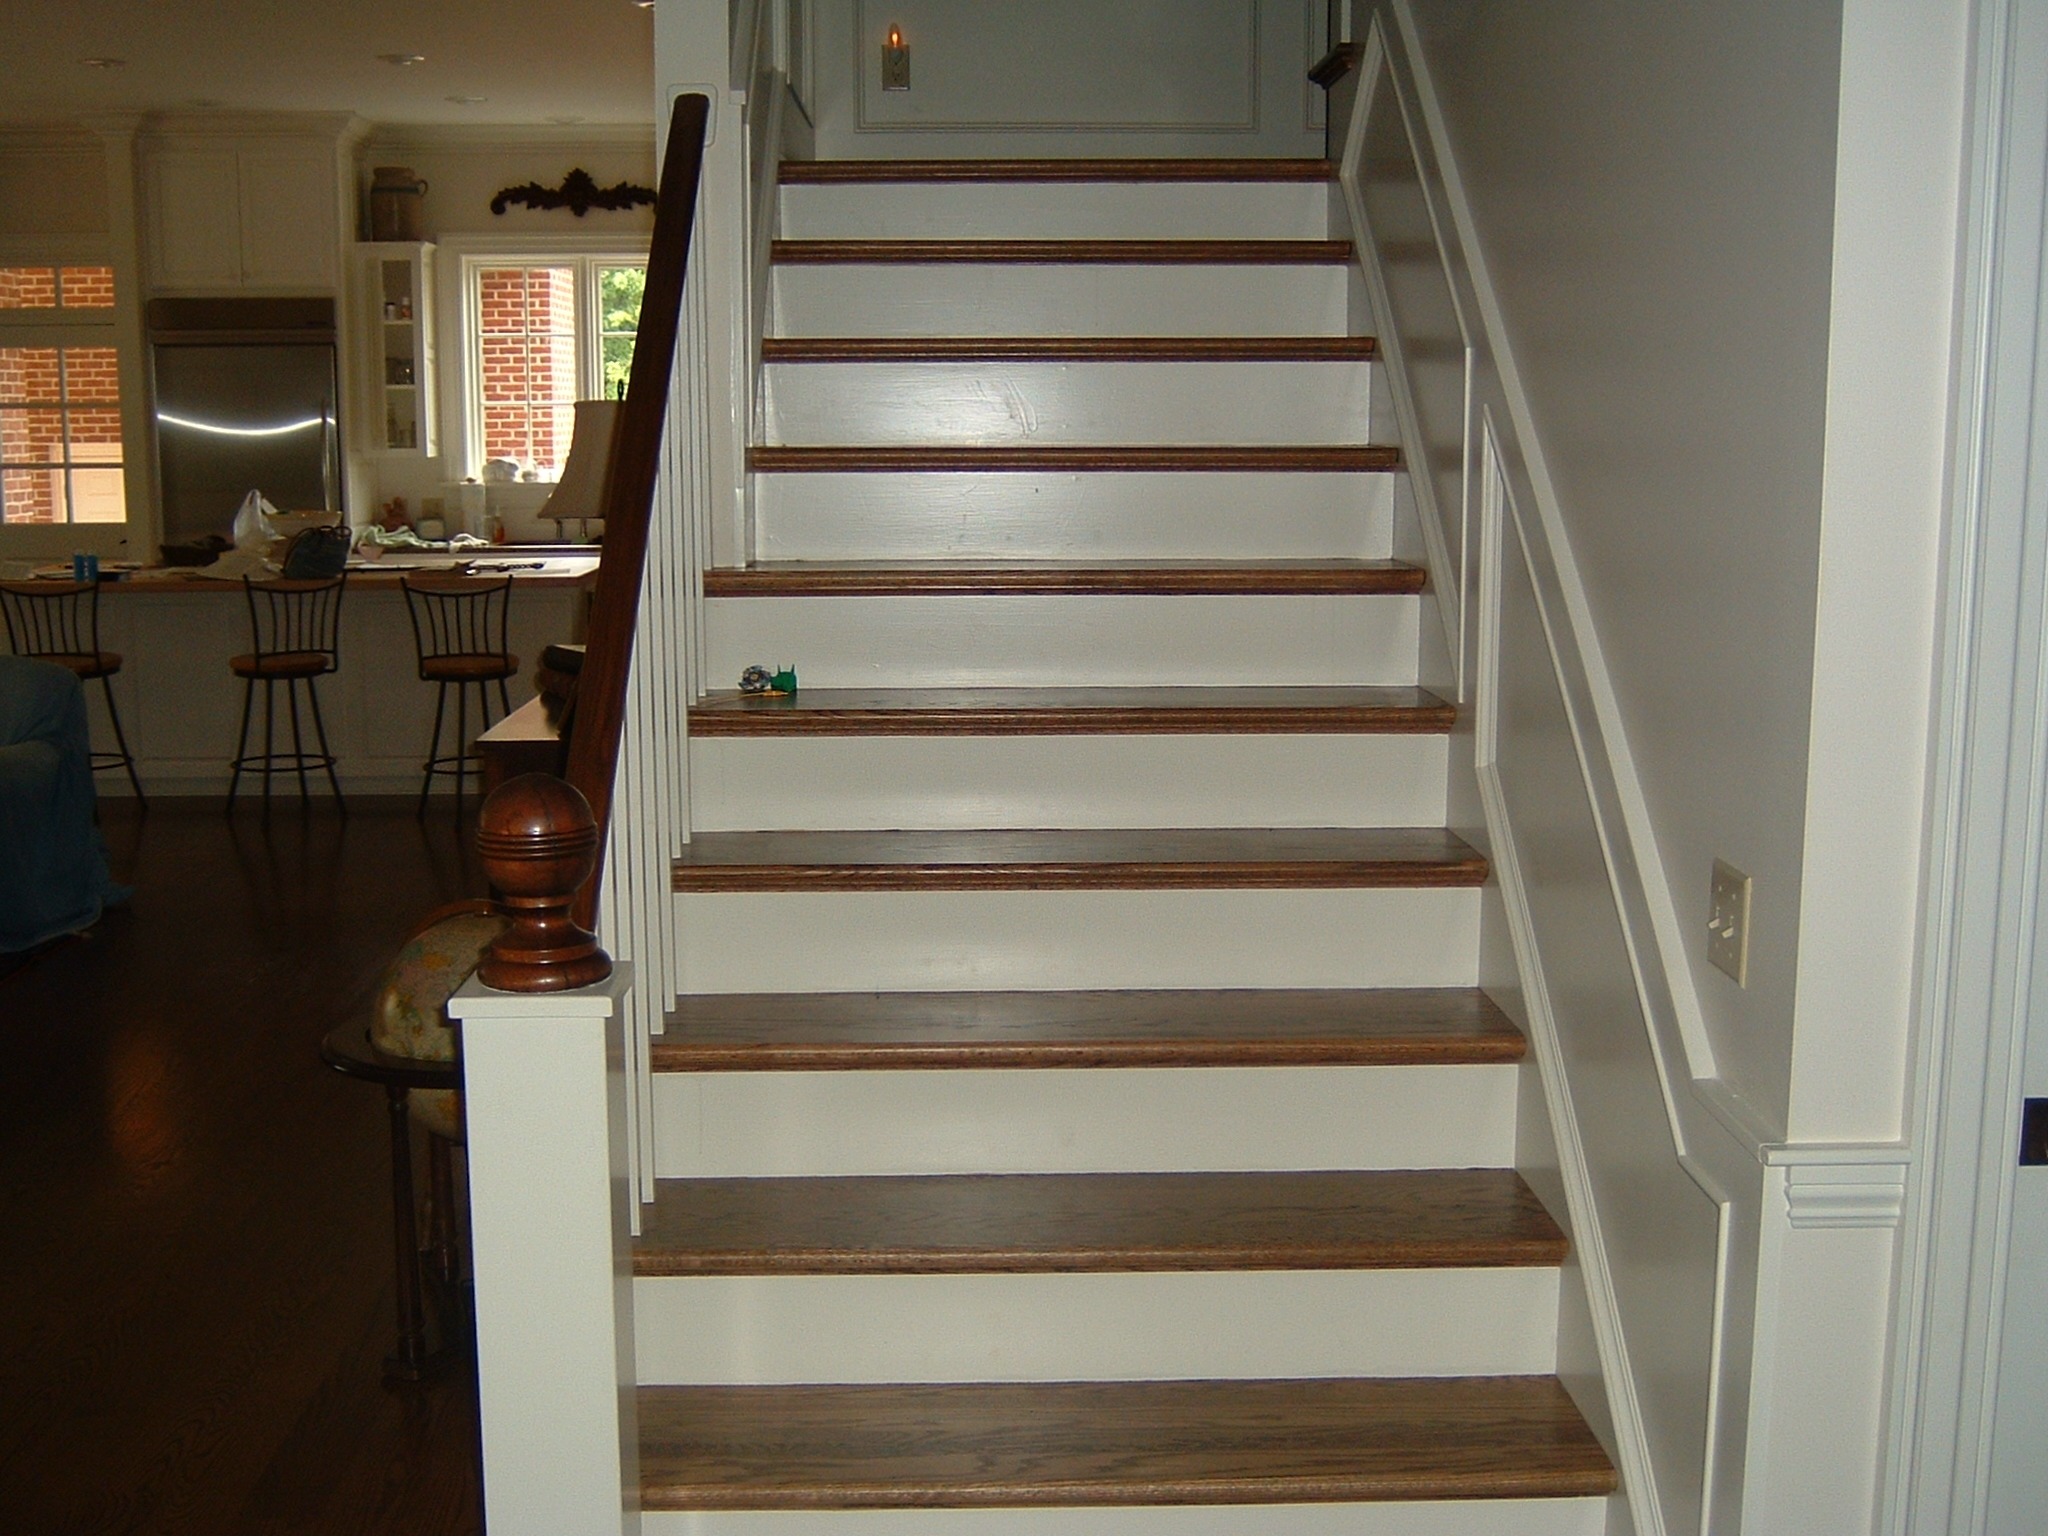 1 Red Oak With Stain Ozark Hardwood Flooring   Red Oak Stair Treads And Risers   Wooden Stairs   Wood Stair   Hardwood Floors   Railing   Stair Parts